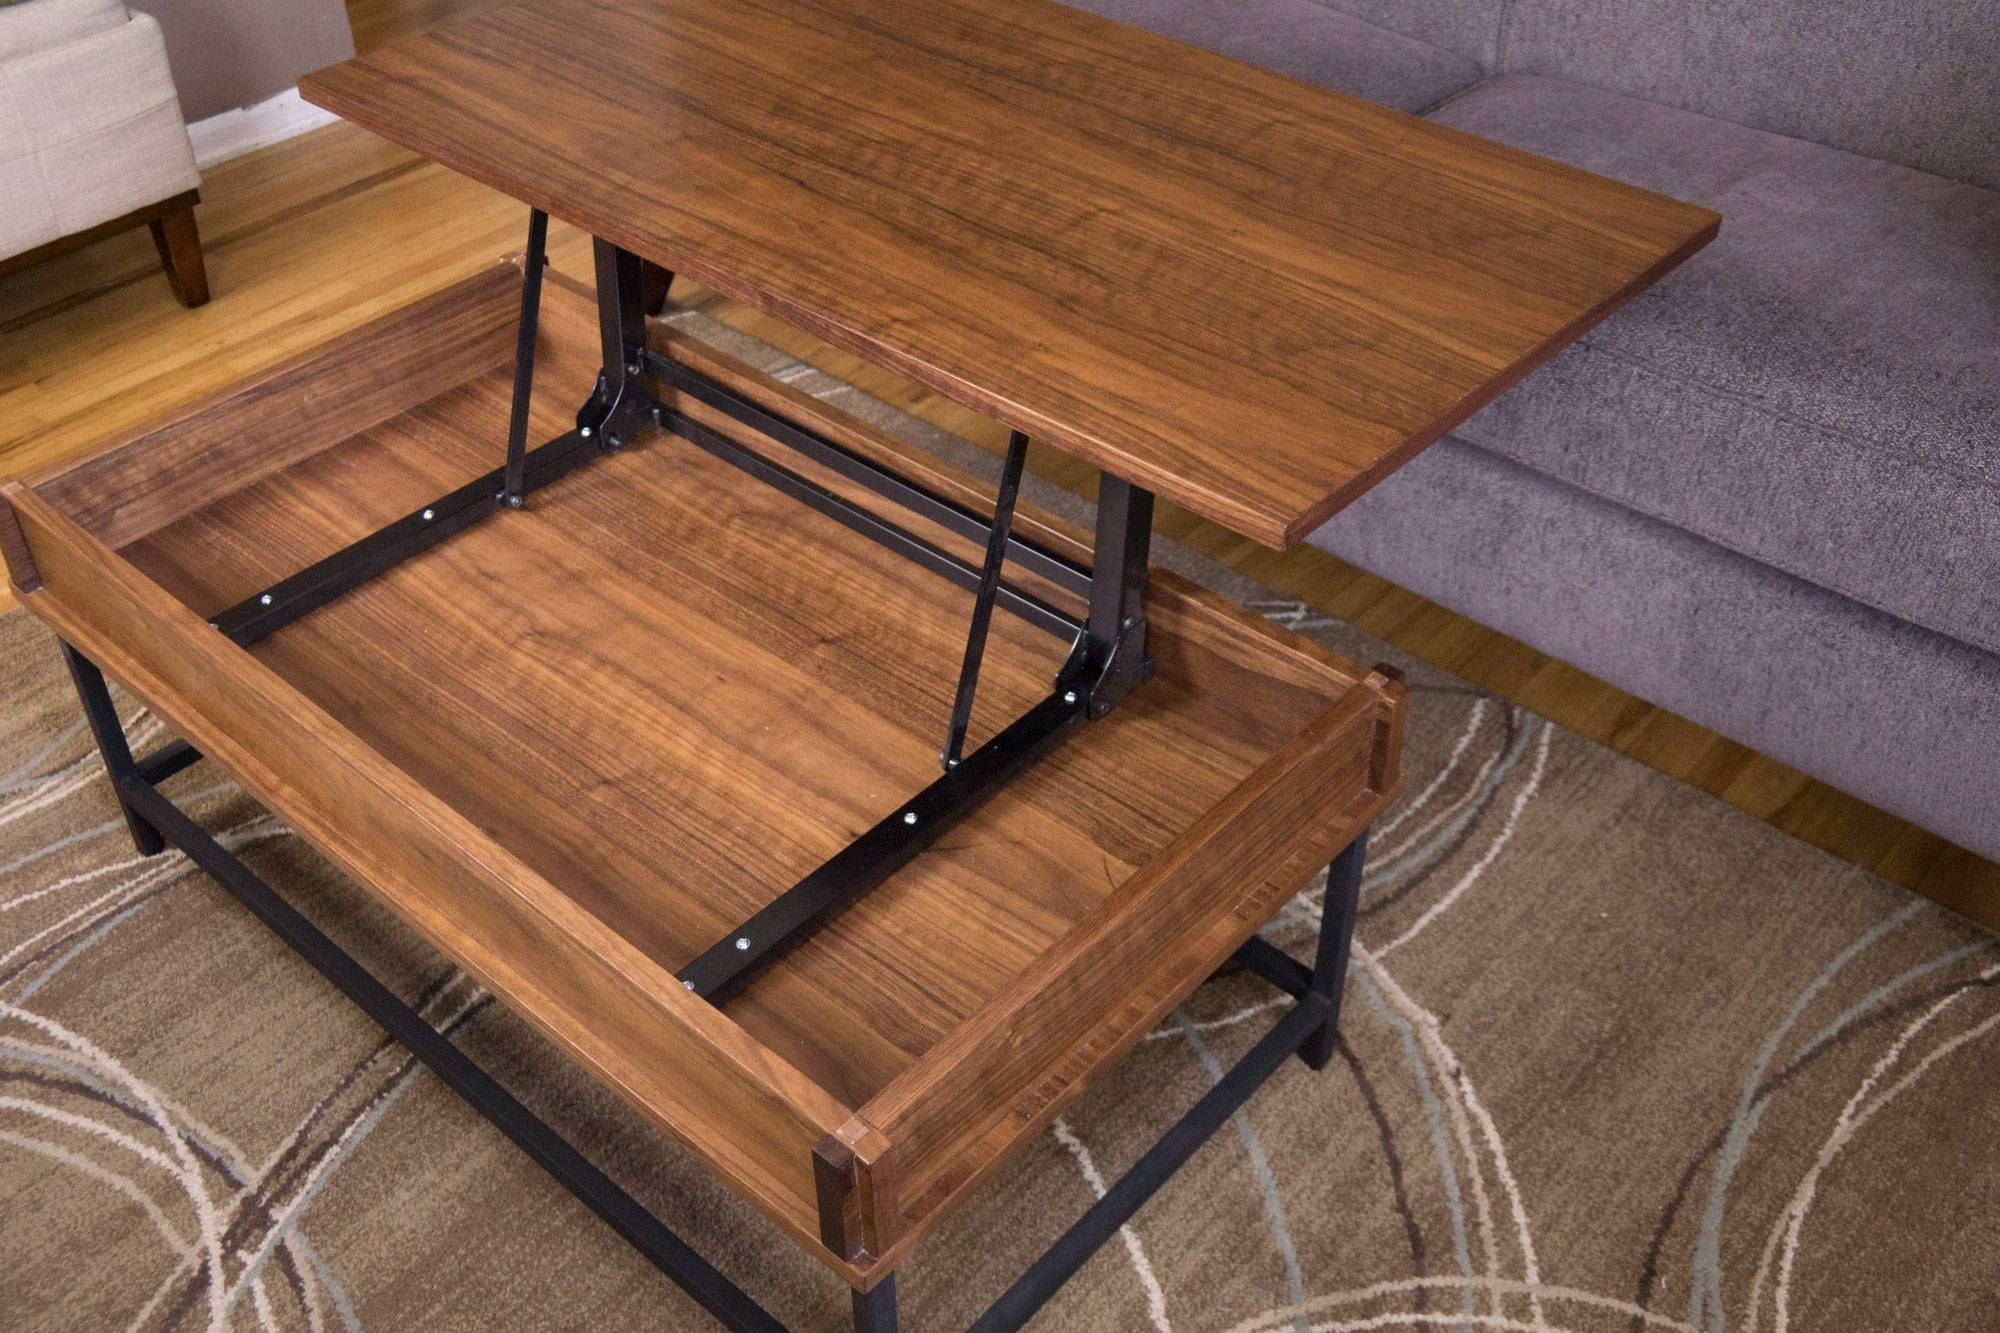 Coffee Table: Marvellous Lift Top Coffee Table Hinges Design Ideas Regarding Coffee Tables With Lift Up Top (View 11 of 30)